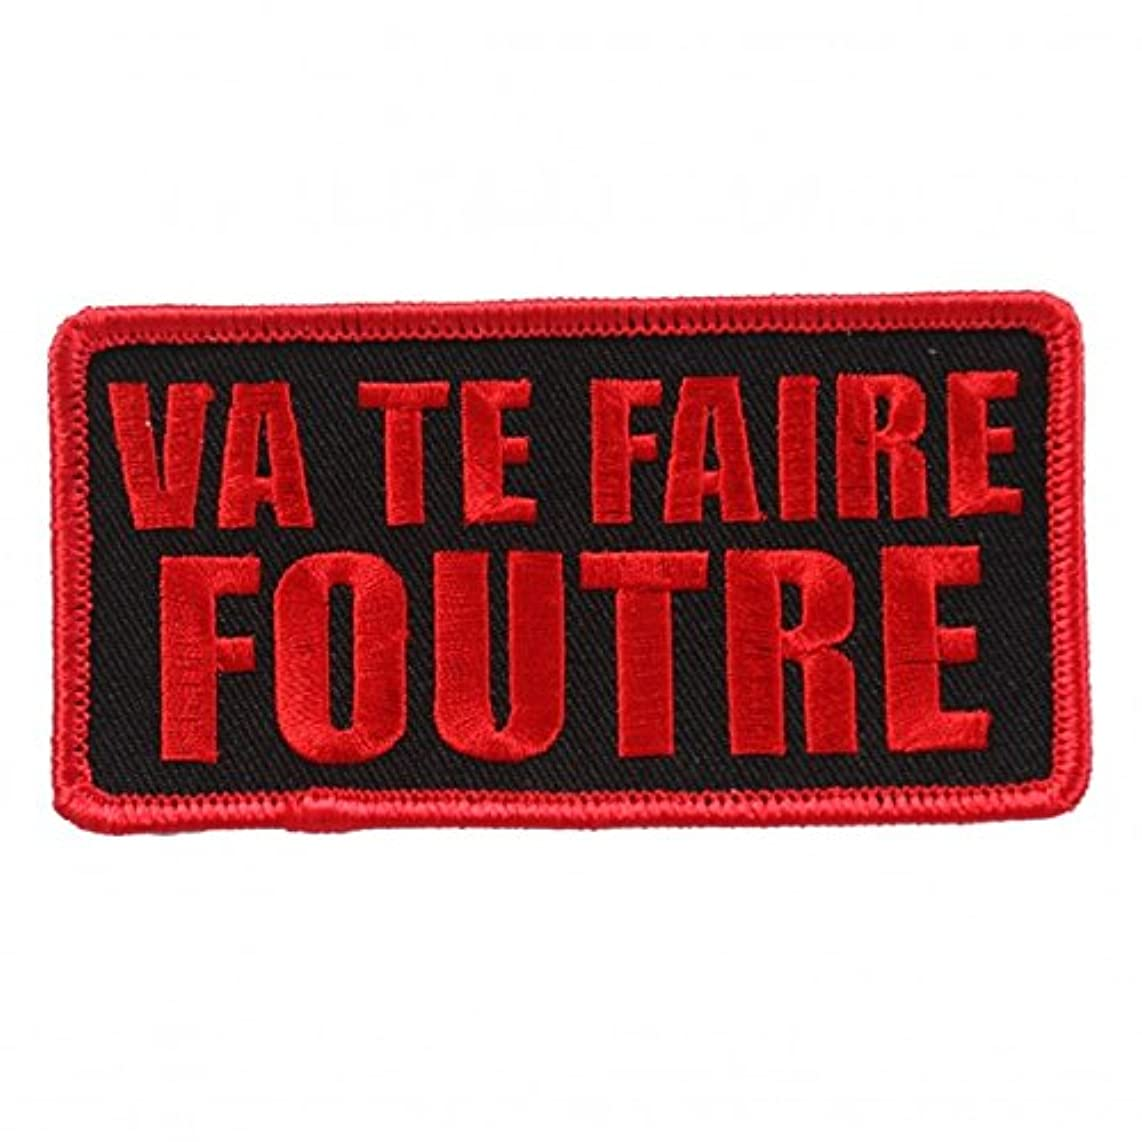 VA TE FAIRE FOUTRE, High Thread Embroidered Iron-On / Saw-On, Heat Sealed Backing Rayon PATCH - 4